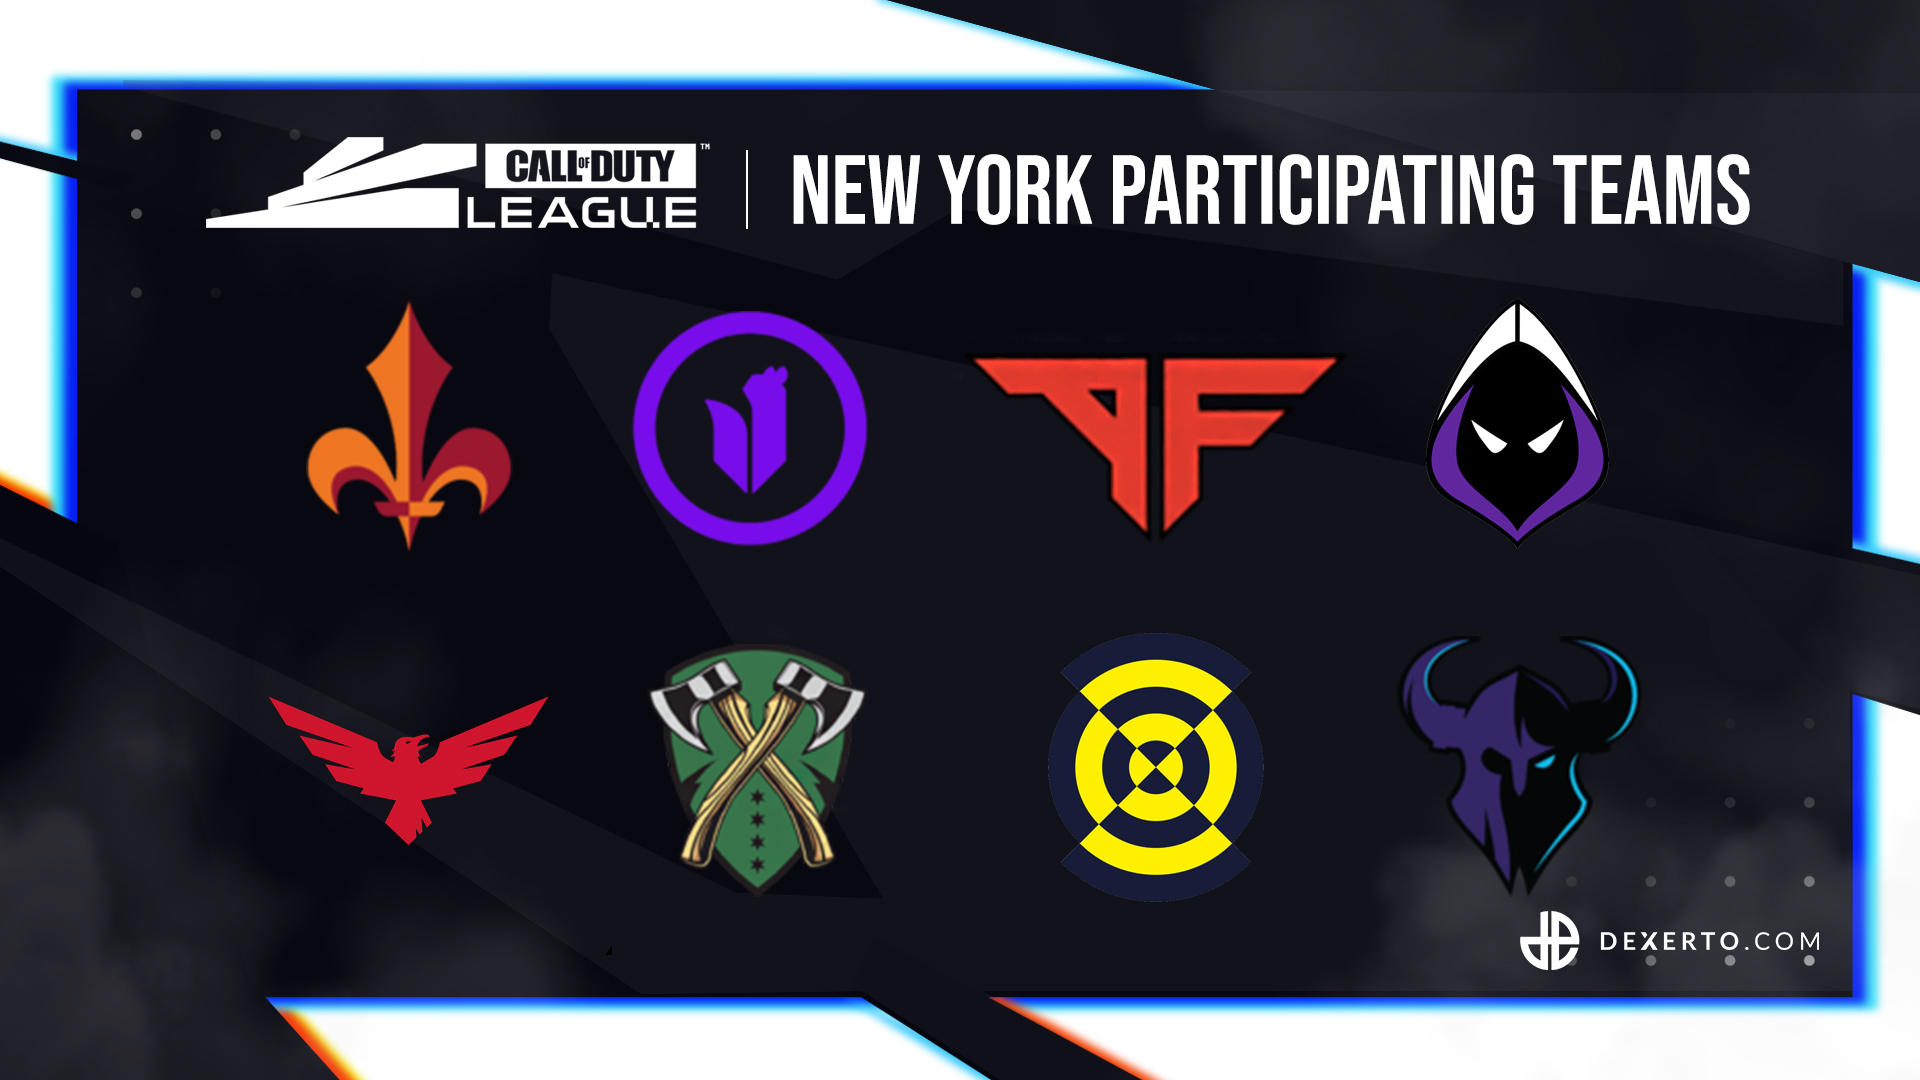 CDL New York participating teams.